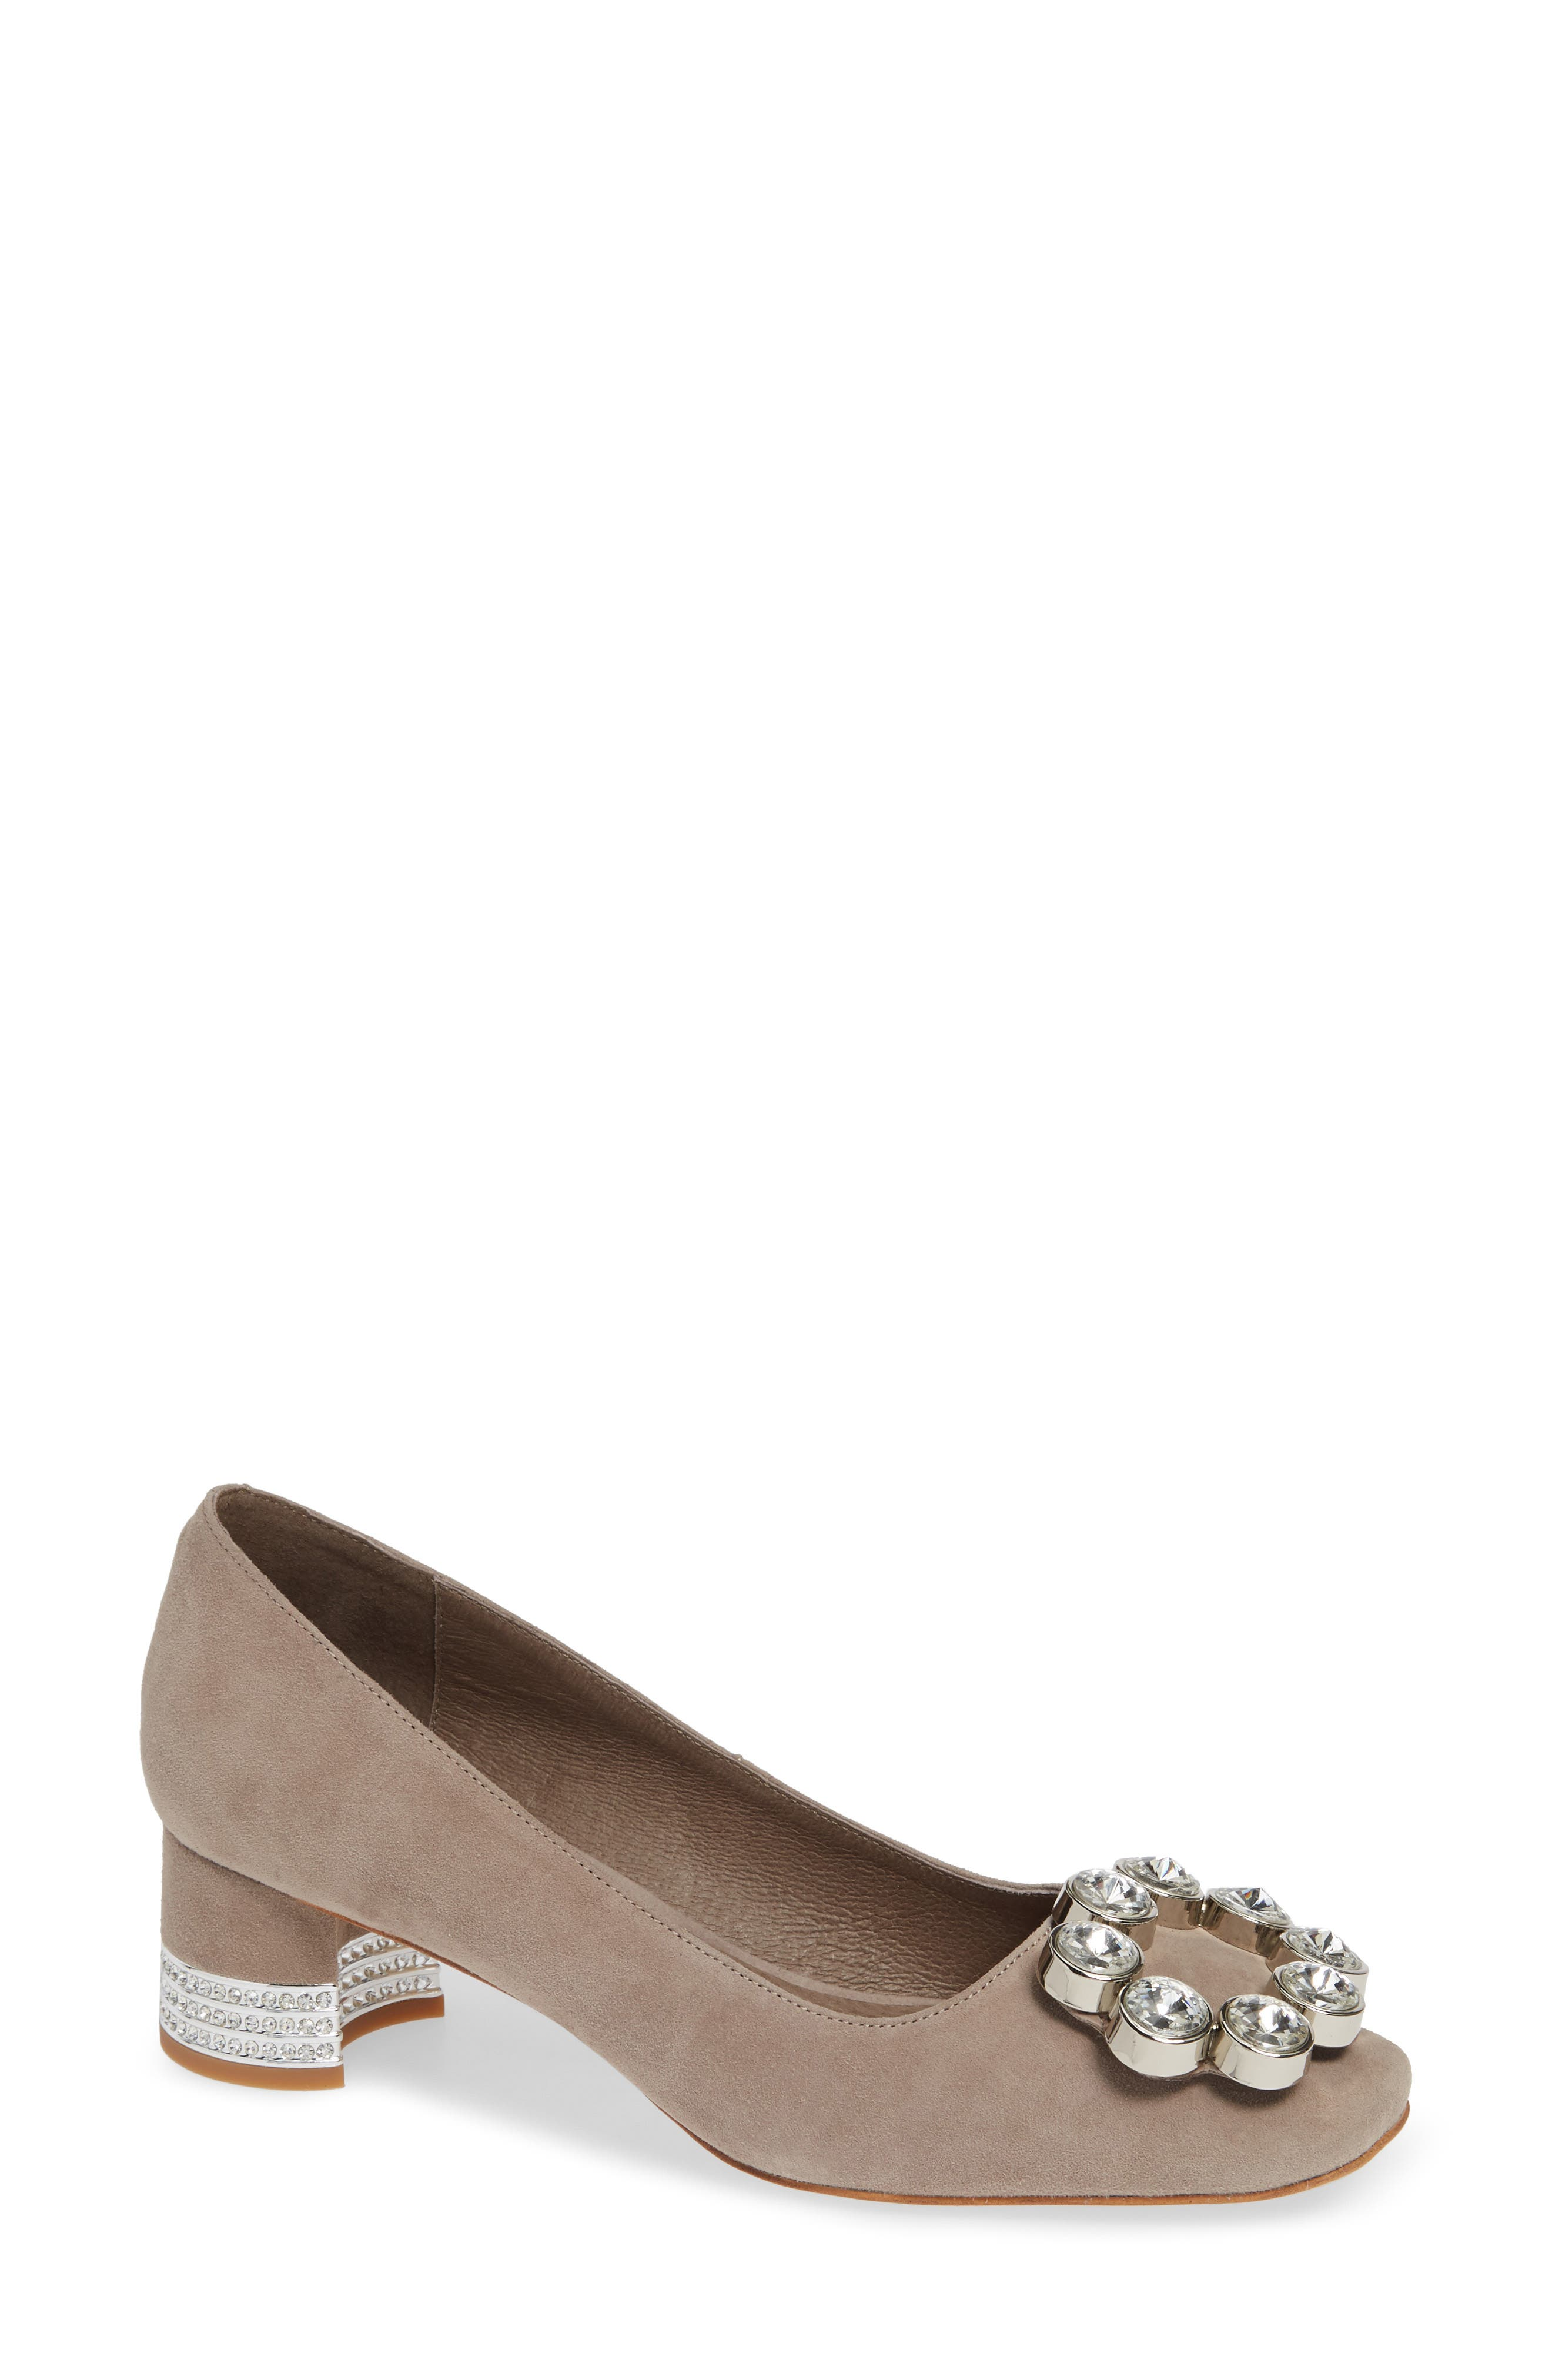 JEFFREY CAMPBELL, Carys Pump, Main thumbnail 1, color, TAUPE SUEDE